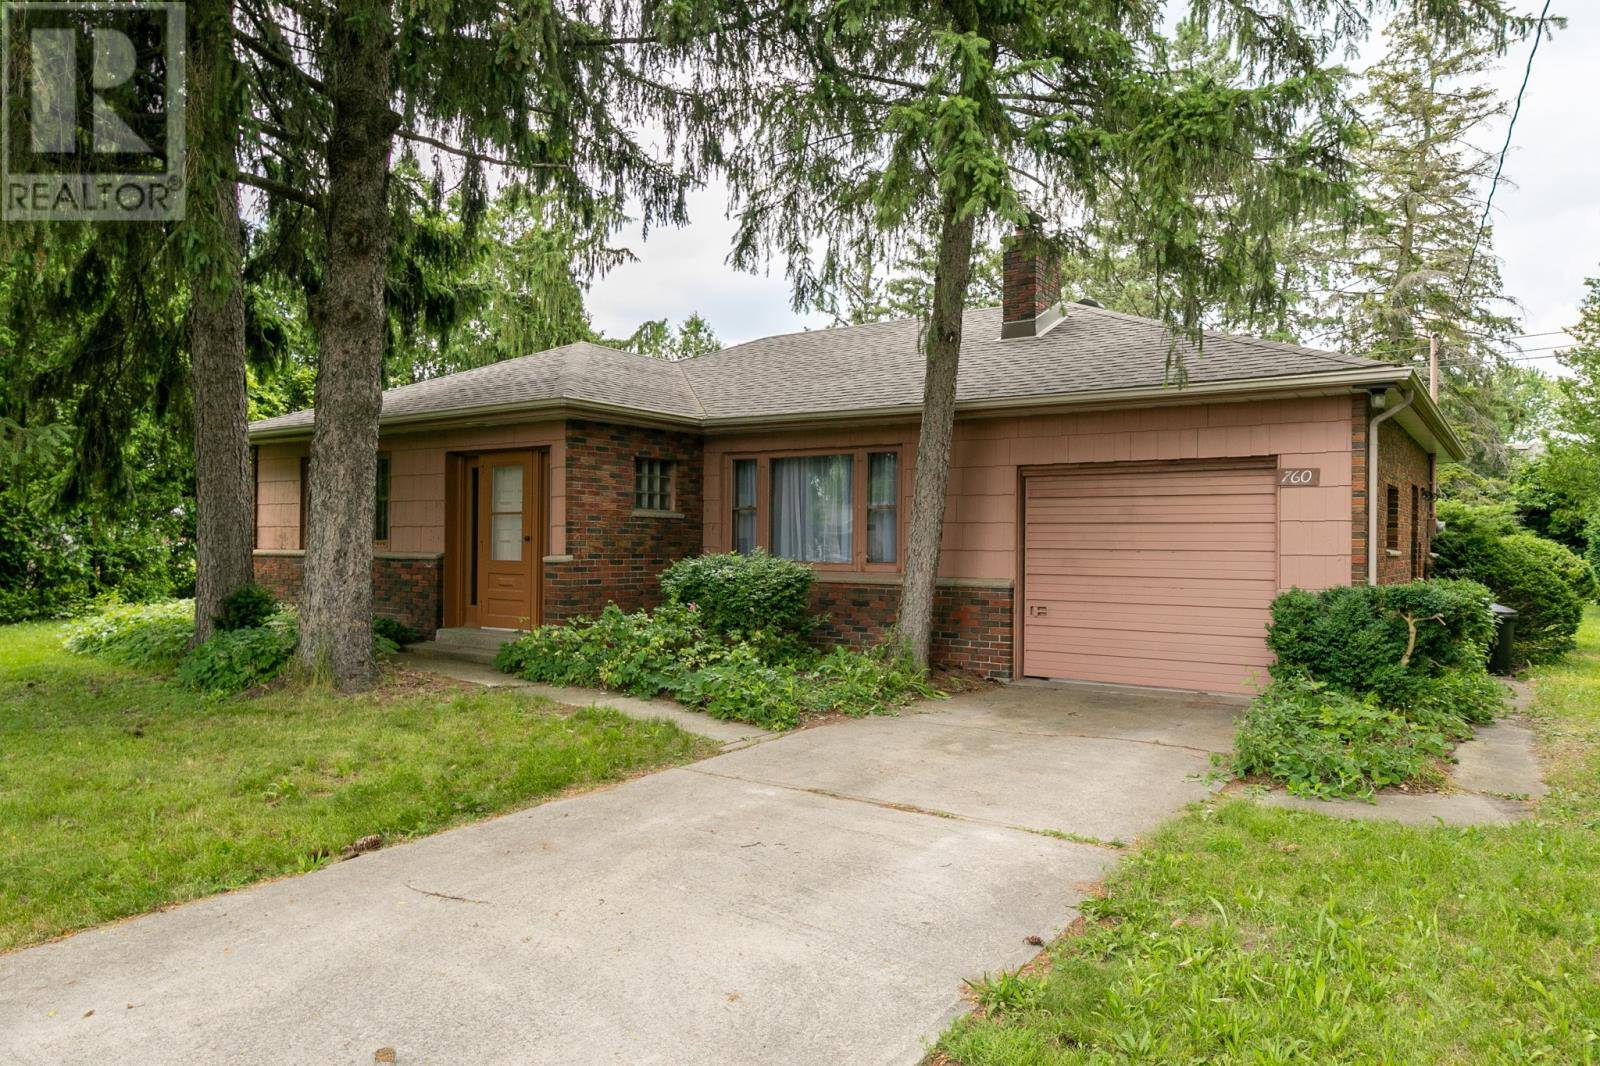 House for sale at 760 Cabana Rd West Windsor Ontario - MLS: 19024275